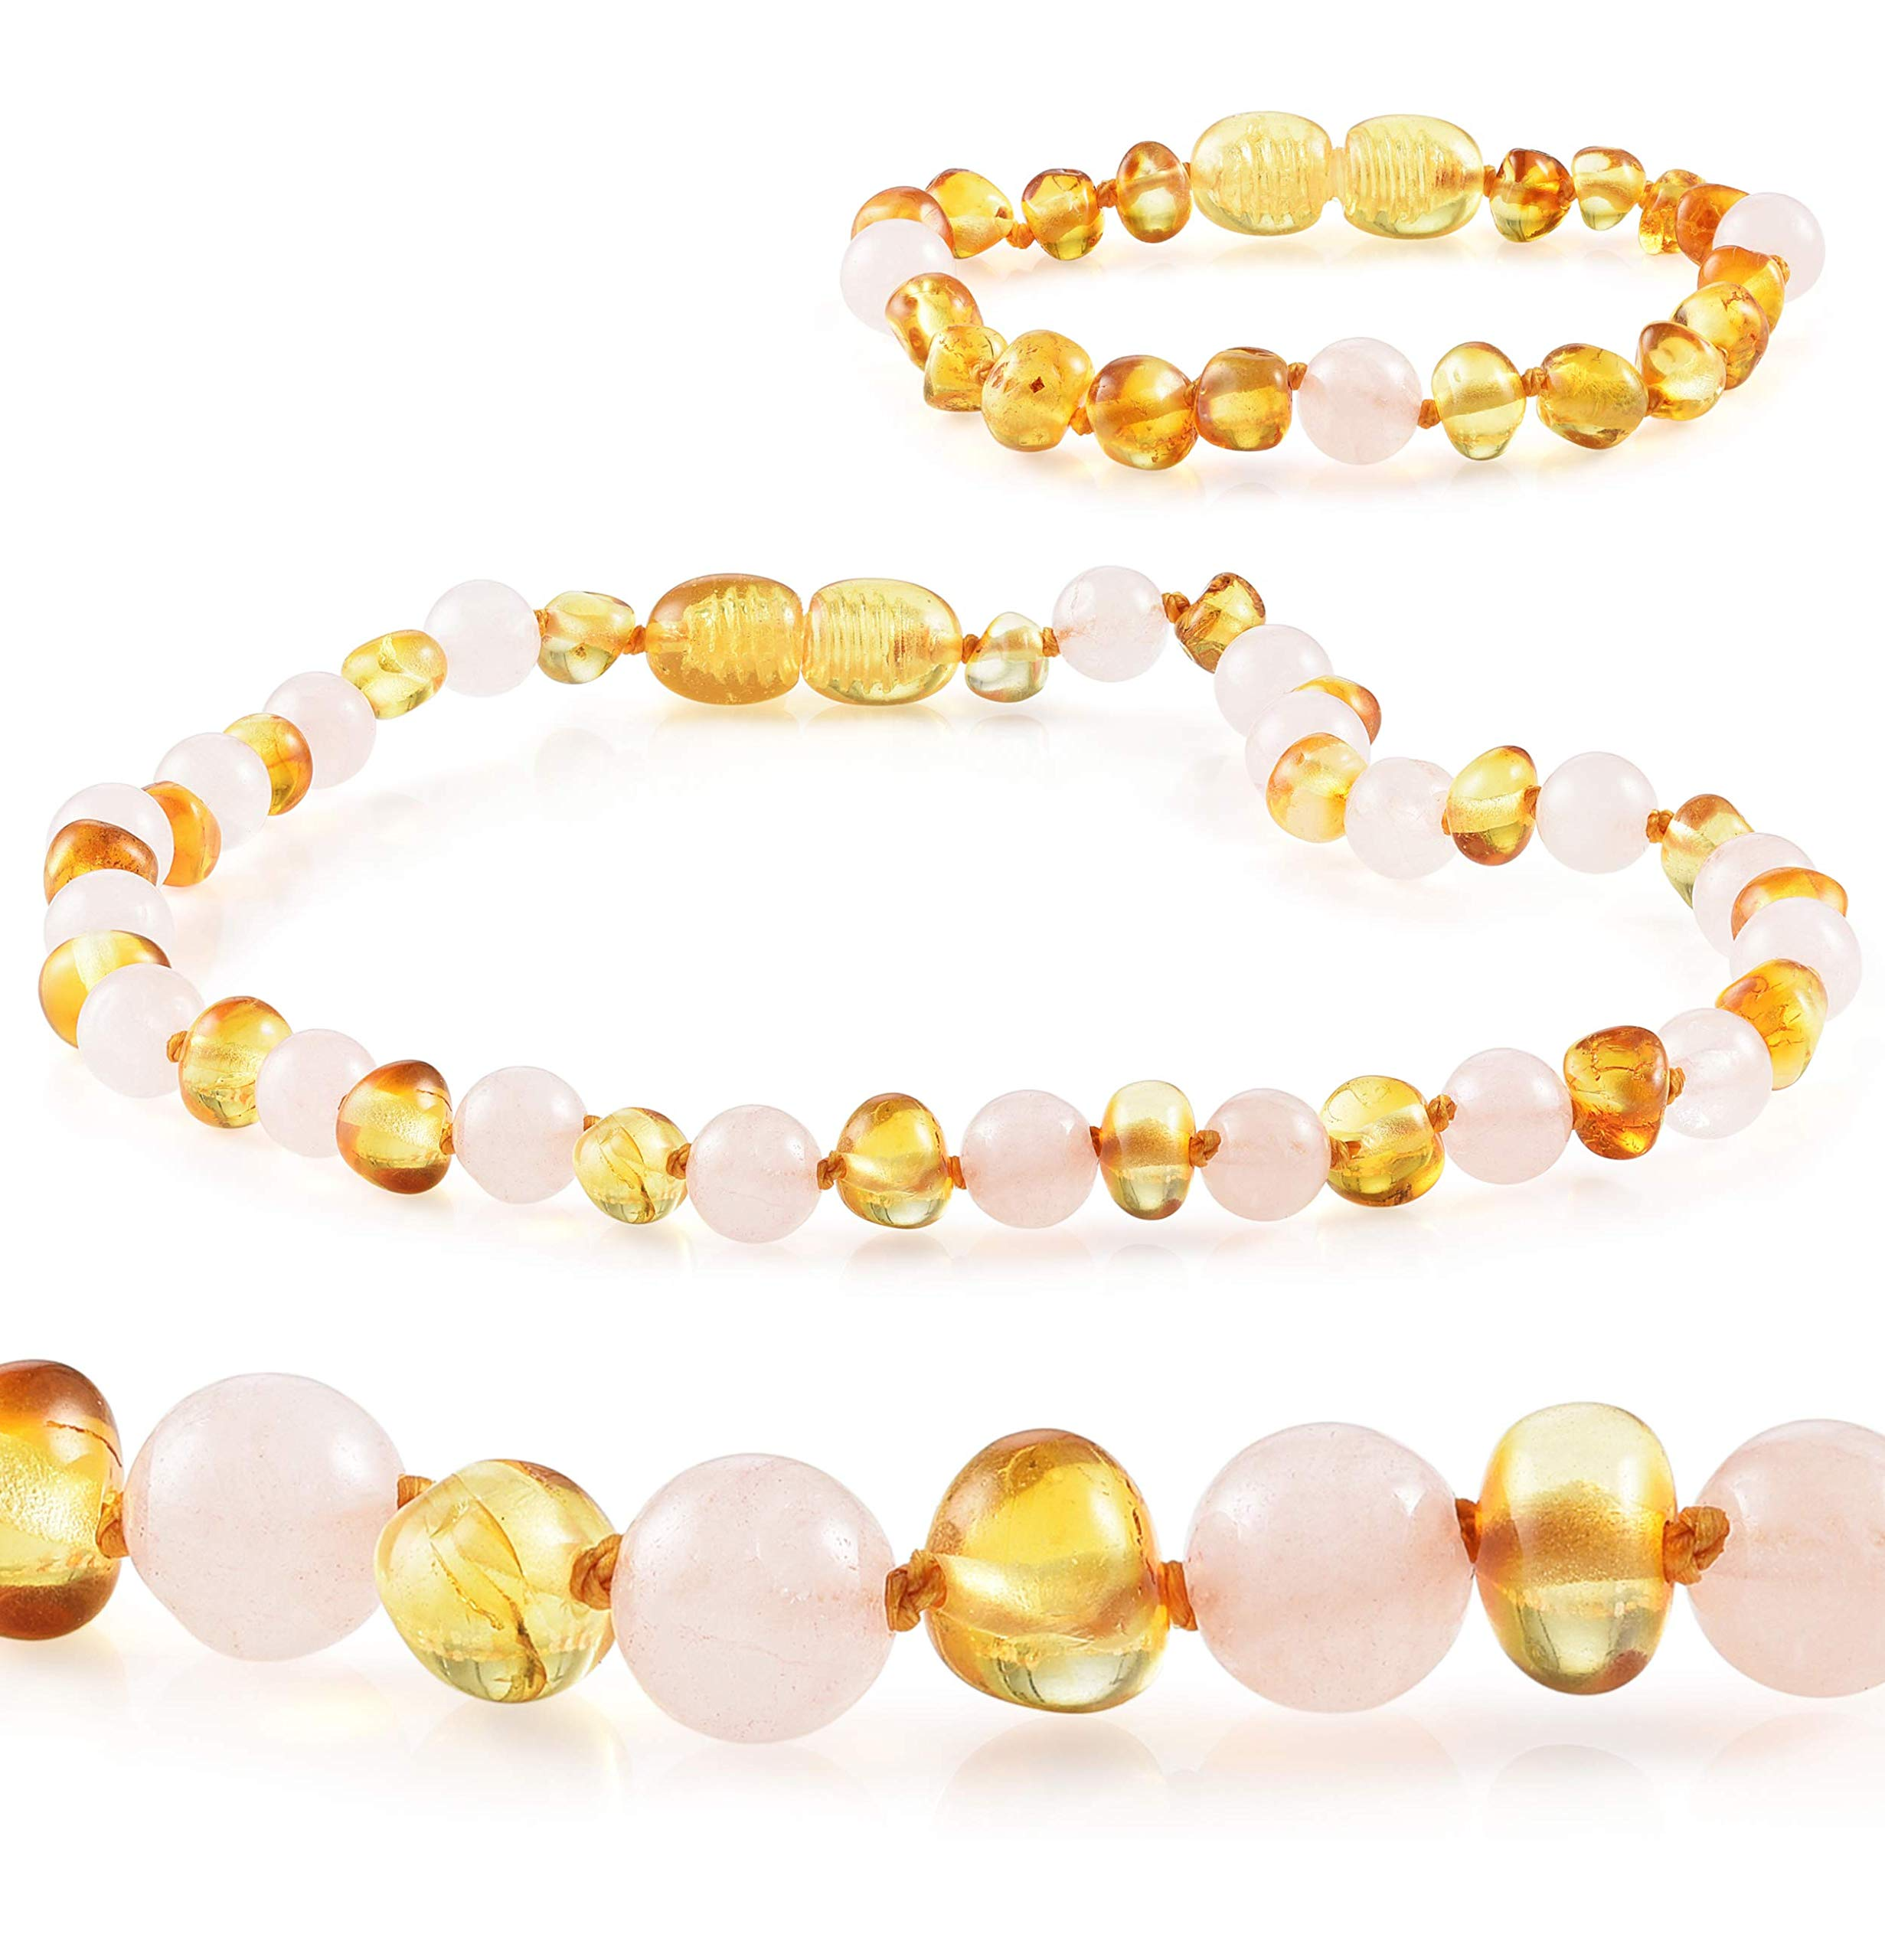 Premium Grade Amber Teething Necklace WITH Bracelet Set - Baltic Amber Teething Necklace in 3 Sizes - Relief for Baby, Toddler & Child - Teether with Real Honey Amber Beads and Rose Quartz (14-15'') by R.B. Amber & Sons